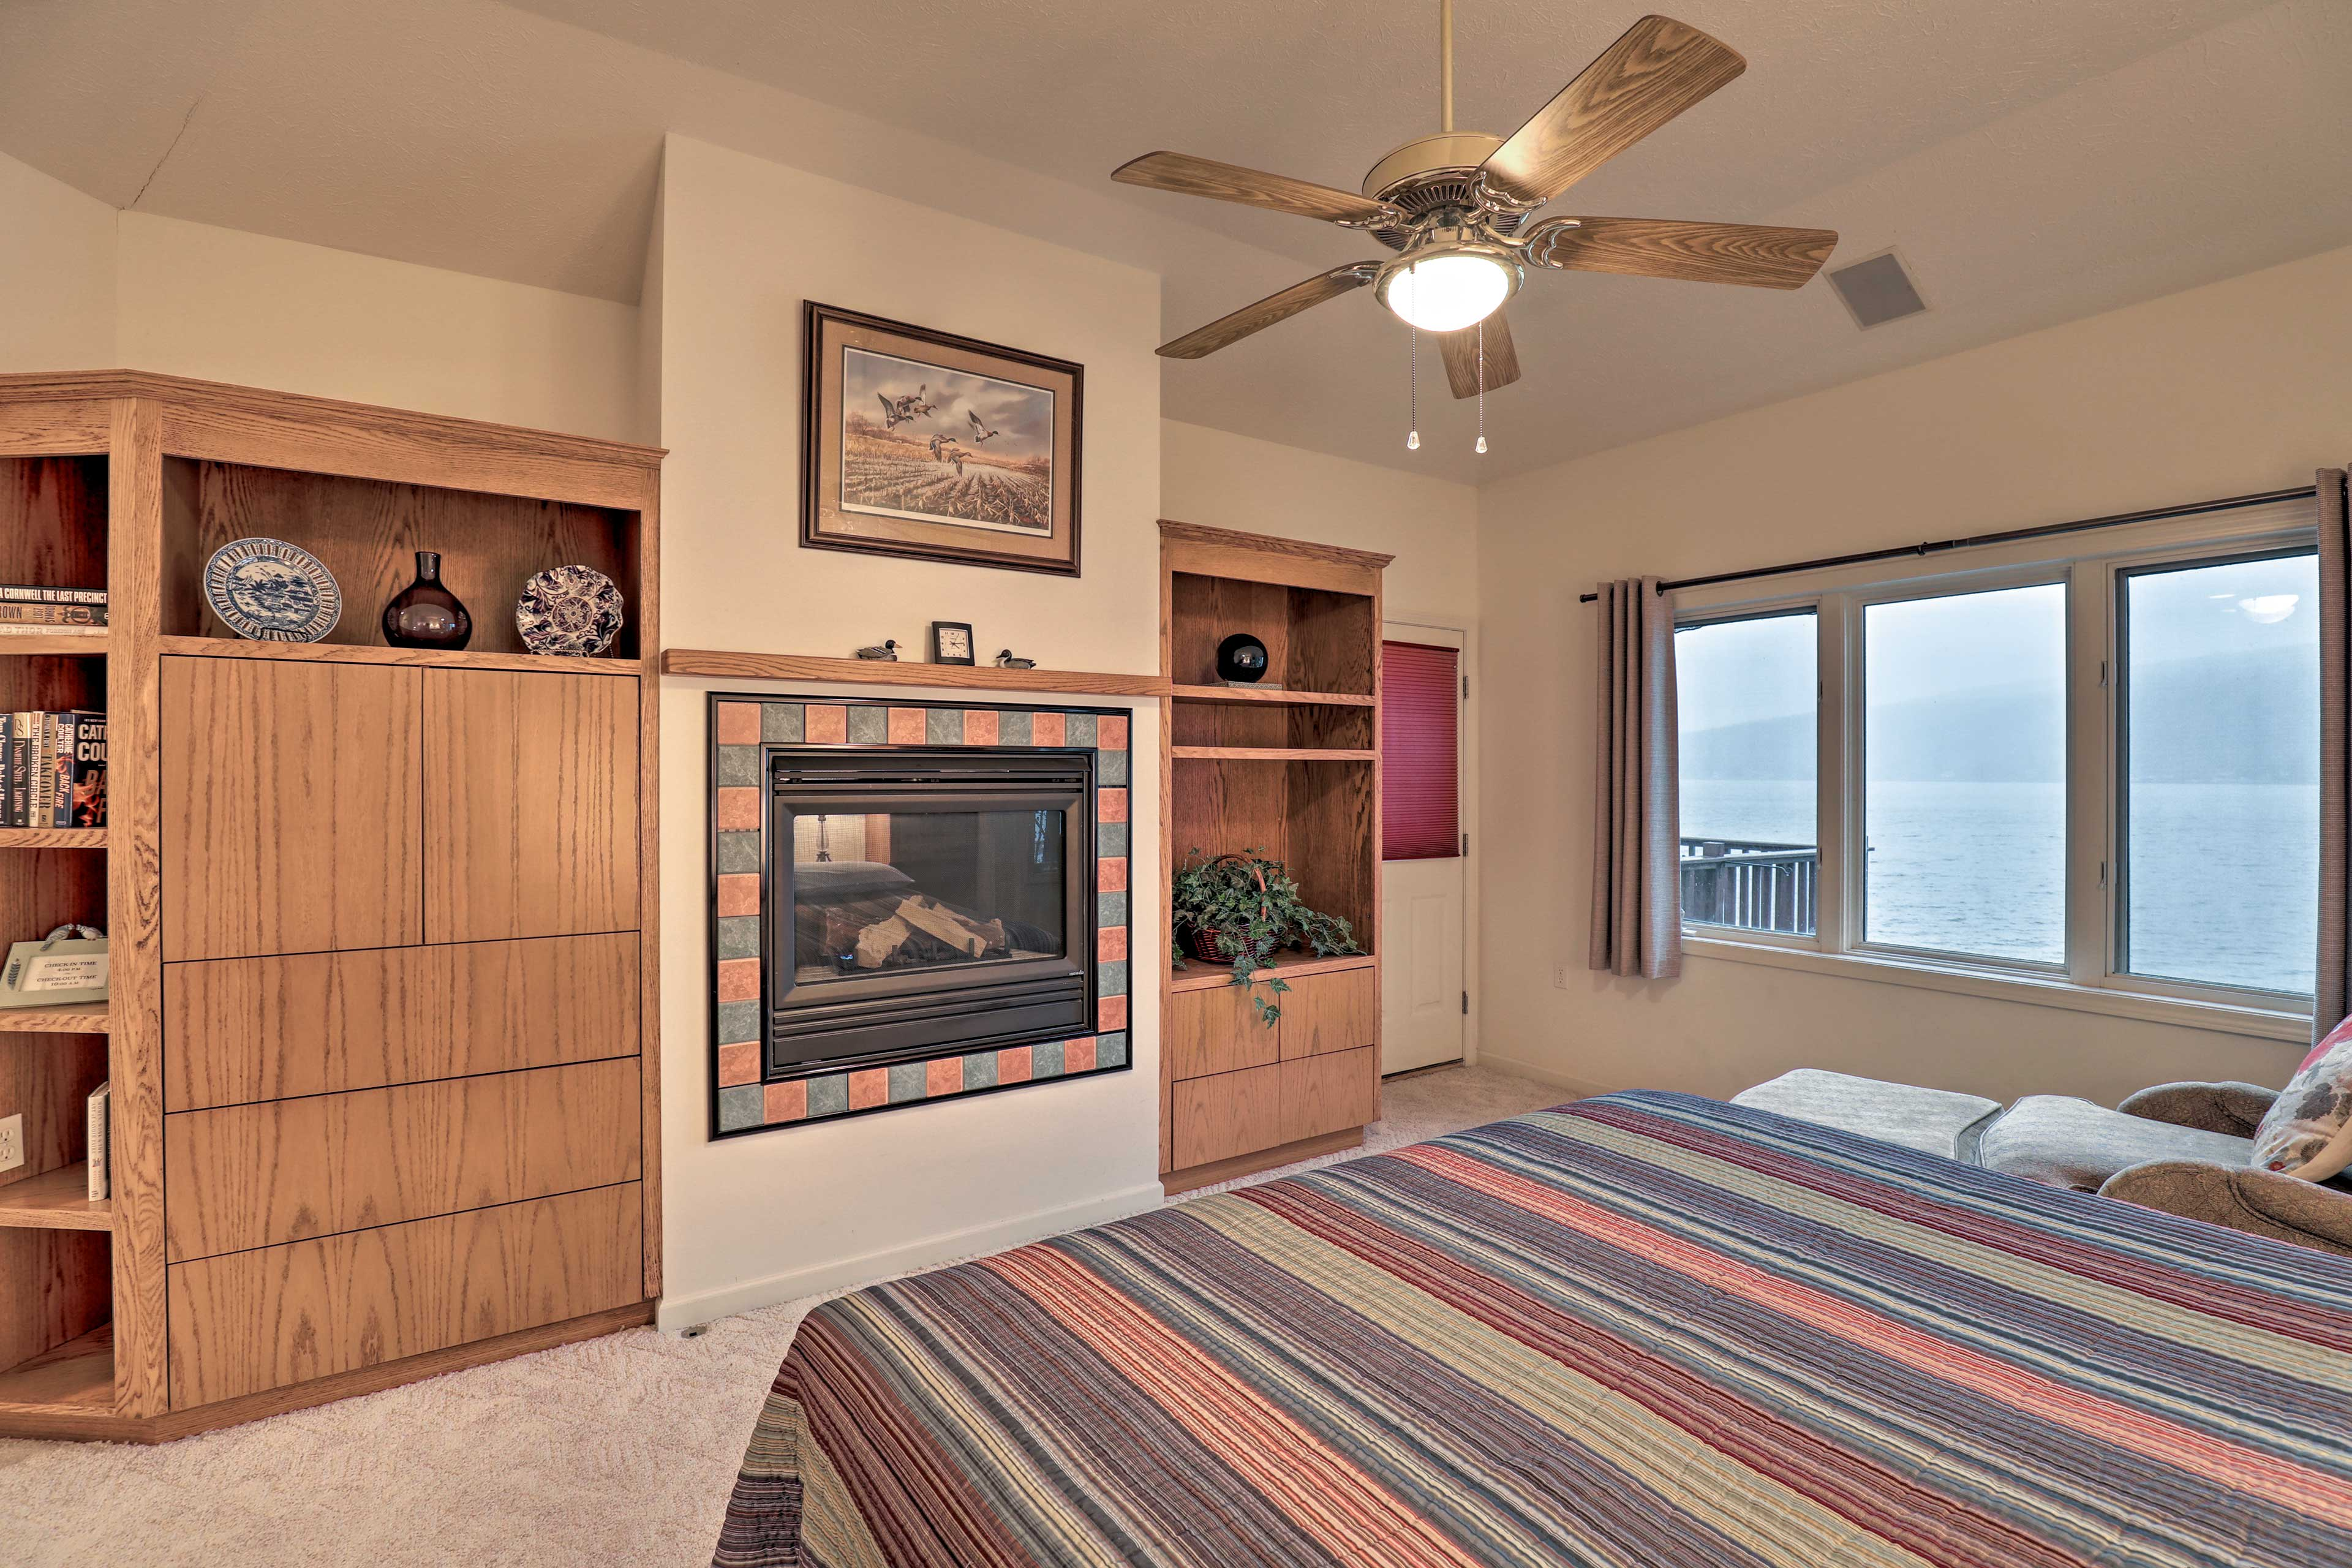 A gas fireplace at the foot of the bed keeps your feet warm through the night!